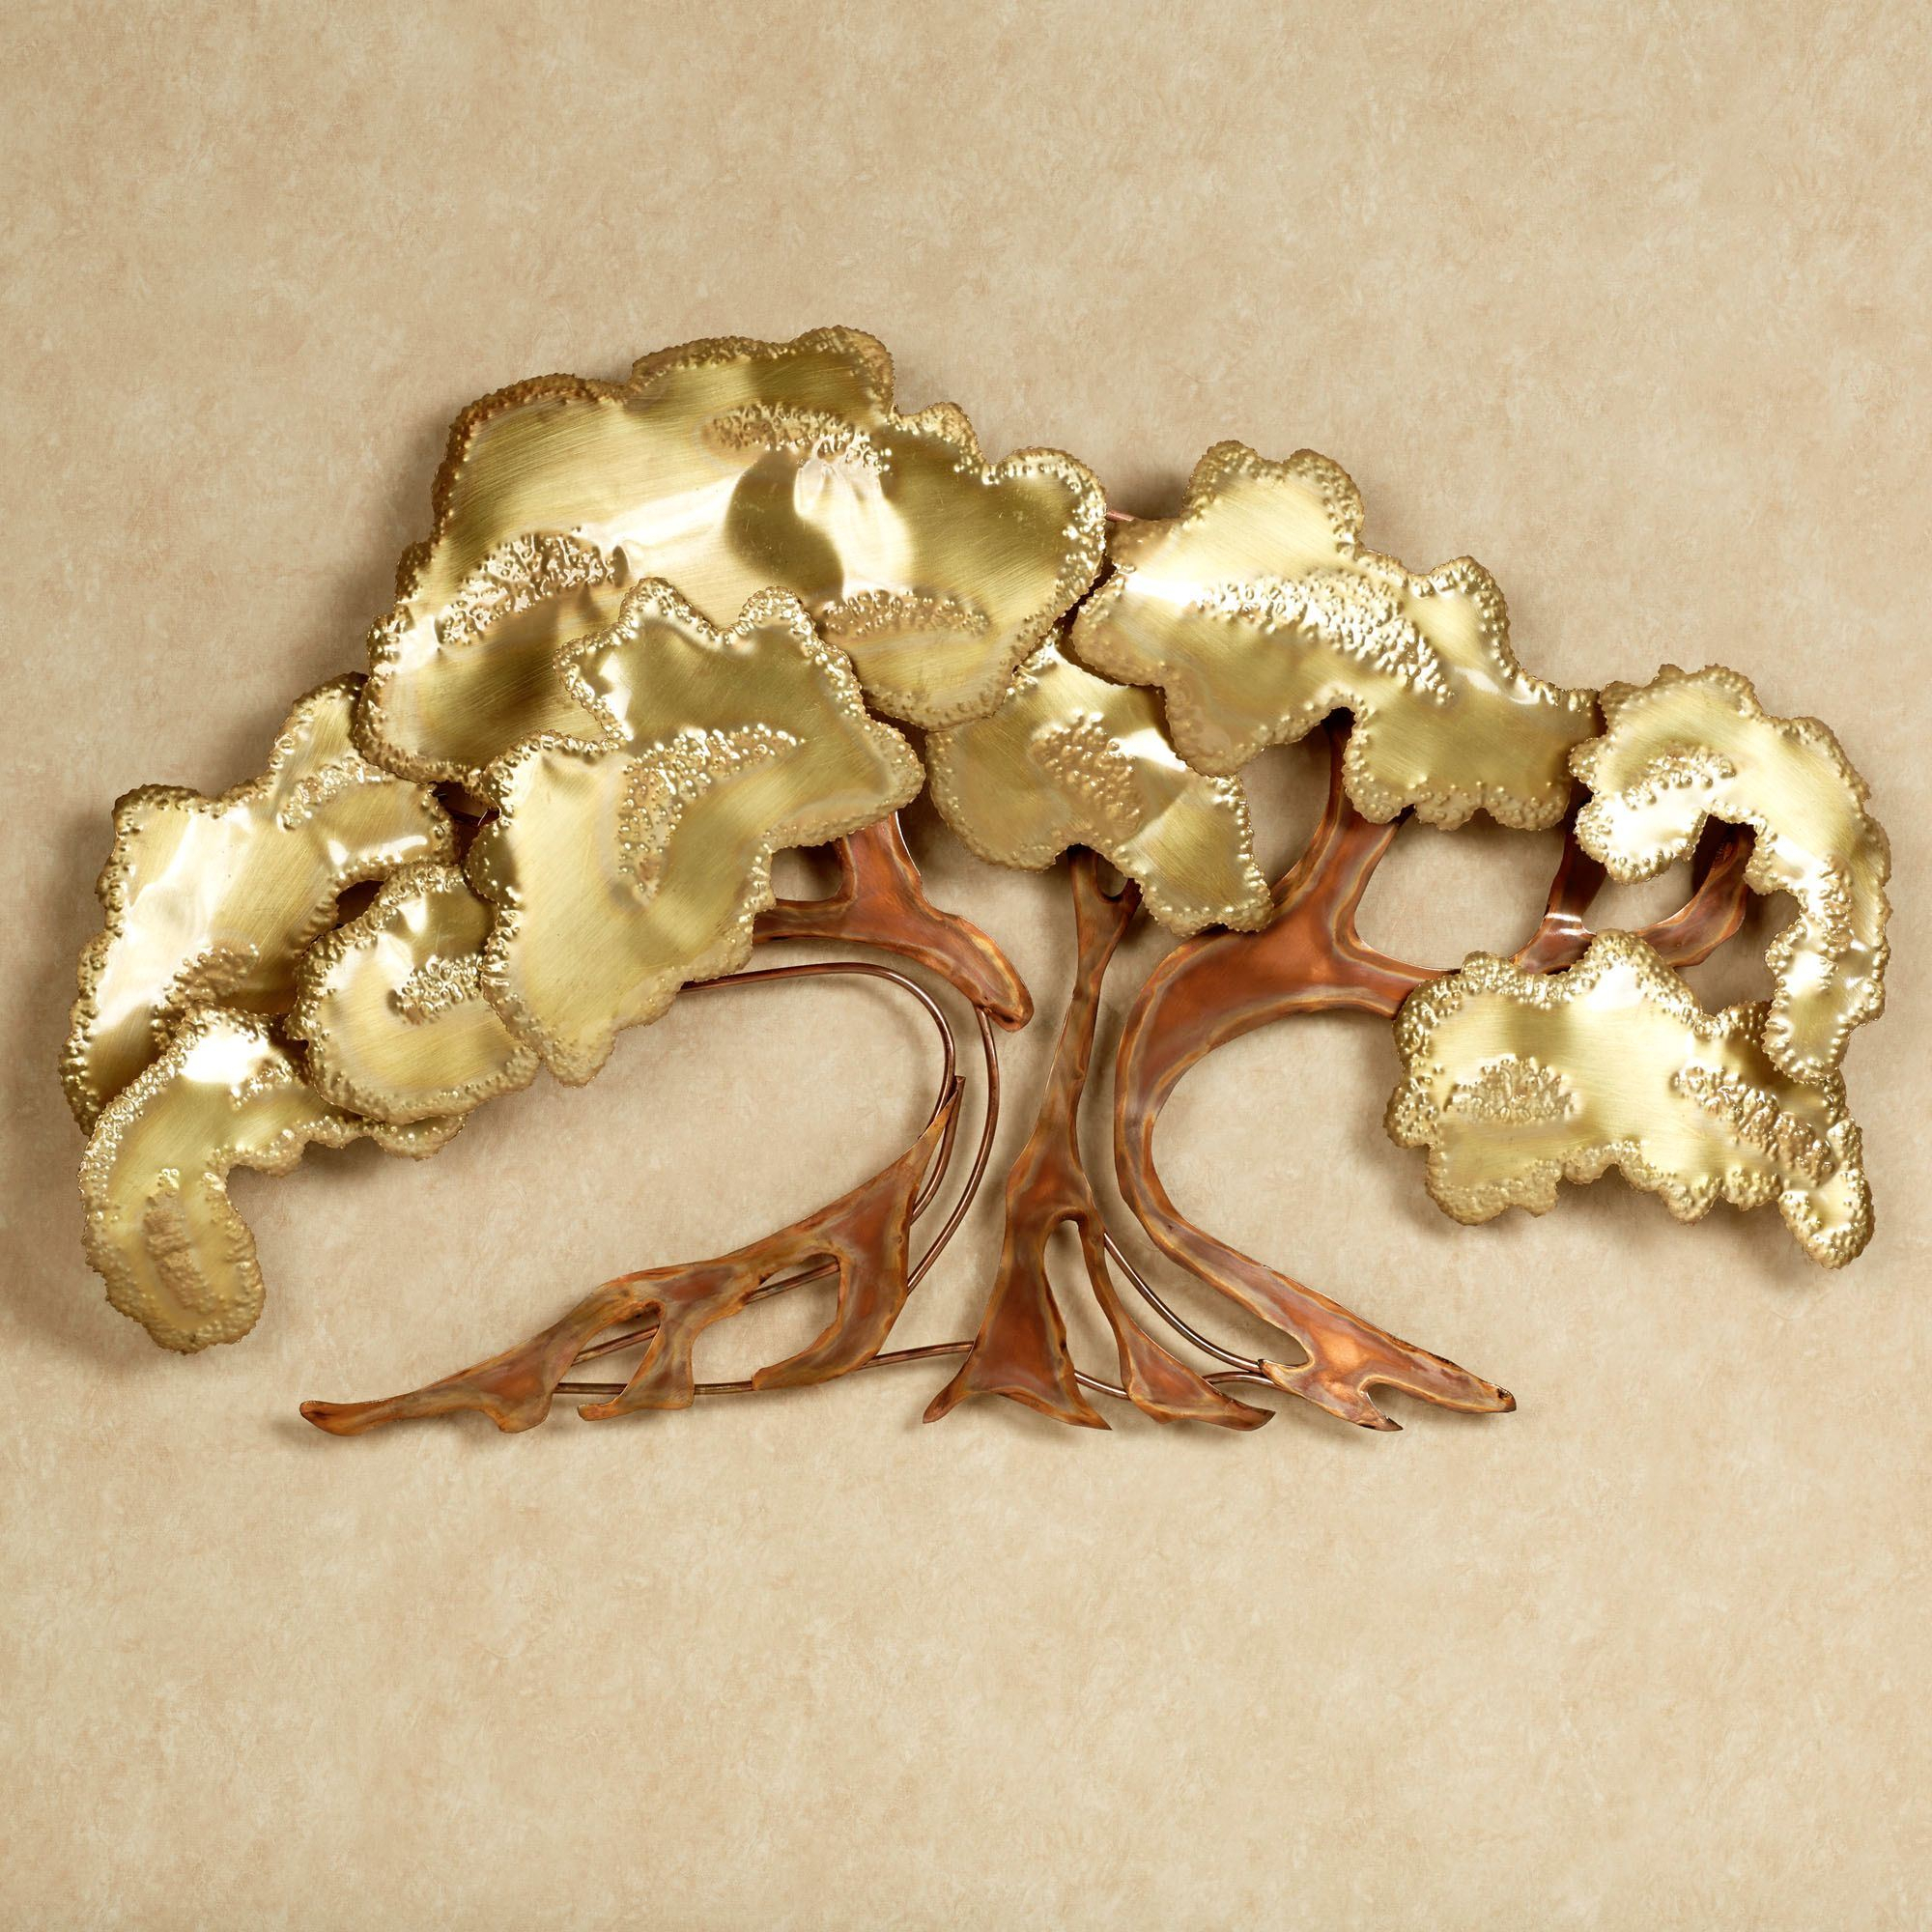 Leaves Metal Sculpture Wall Decor For Best And Newest Zen Tree Metal Wall Sculpture (Gallery 13 of 20)